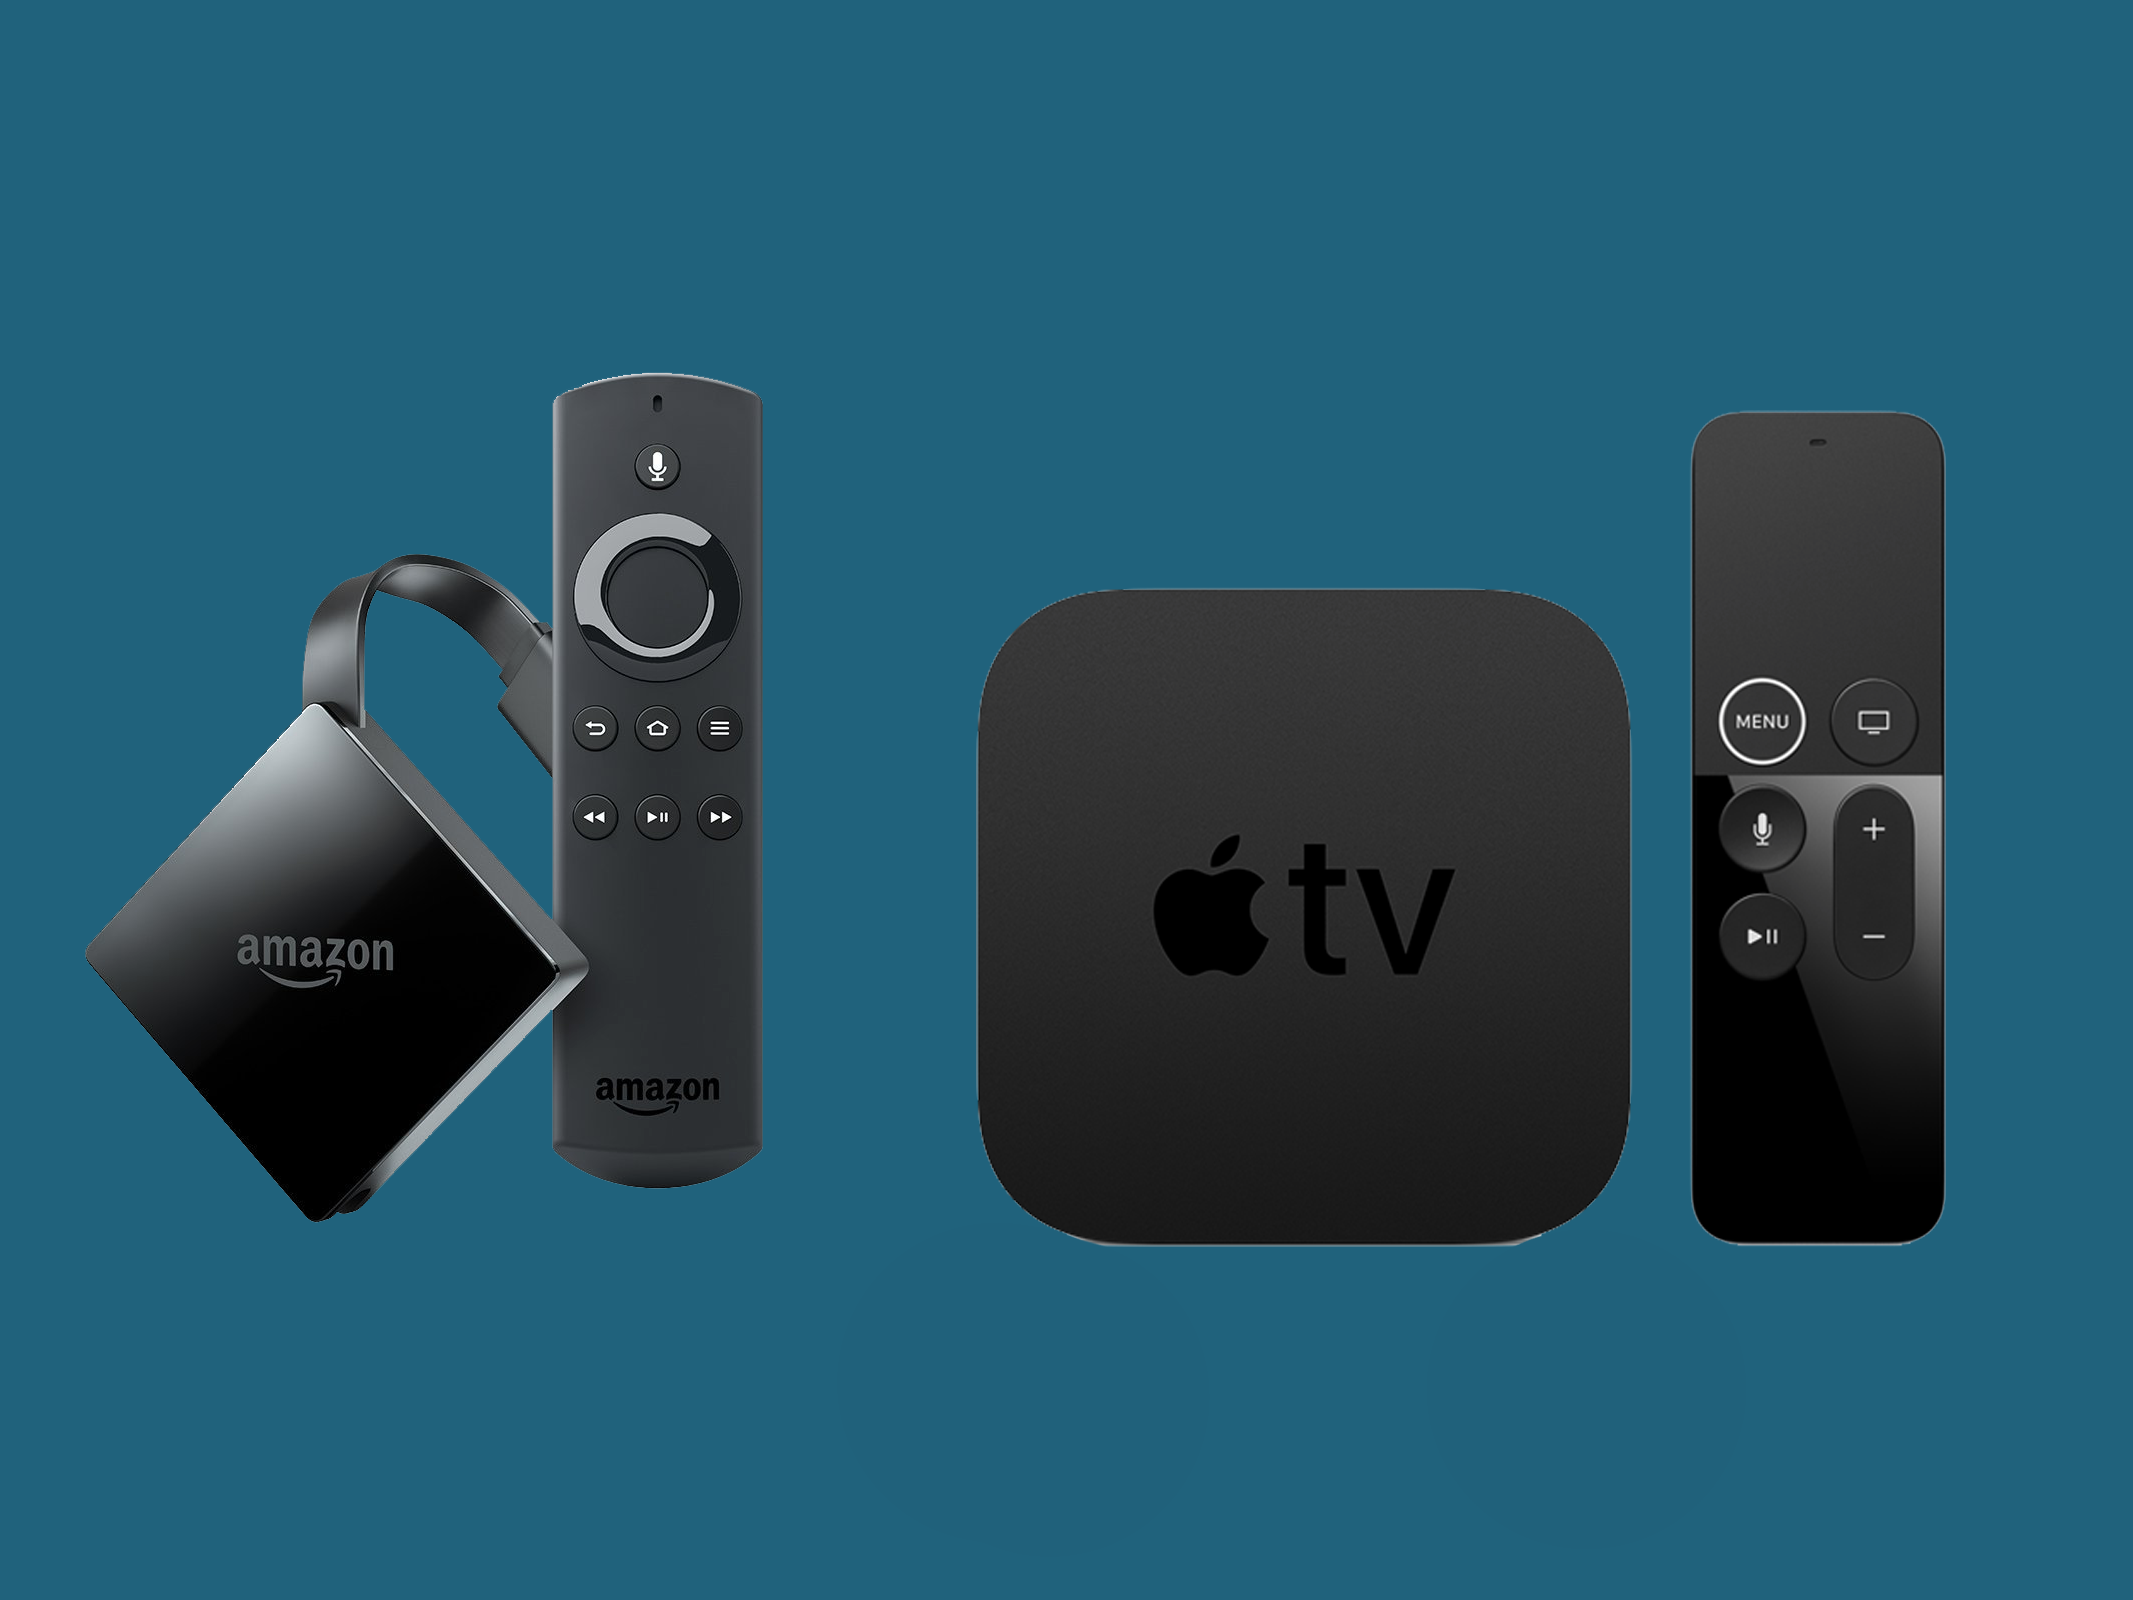 Here's how Amazon's Fire TV with 4K stacks up to the Apple